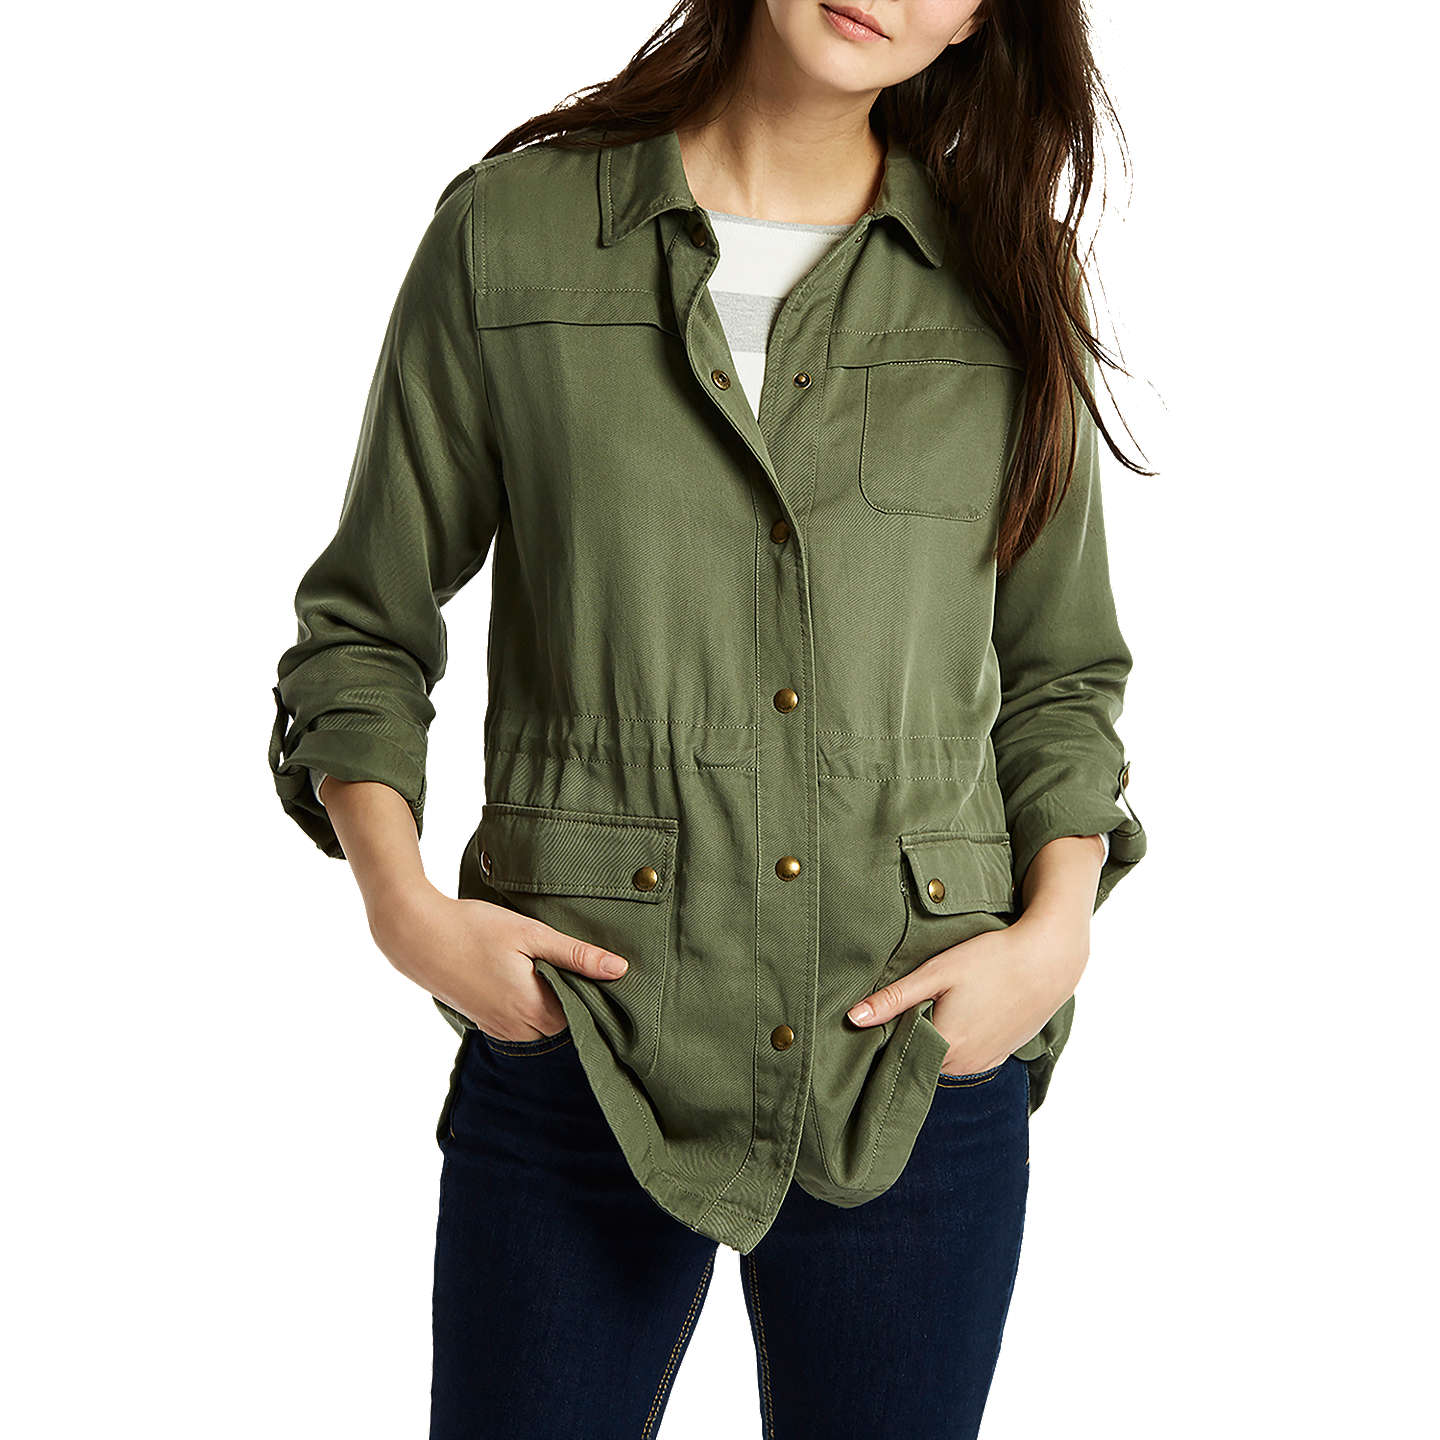 BuyJoules Cassidy Safari Jacket, Khaki, 8 Online at johnlewis.com ...